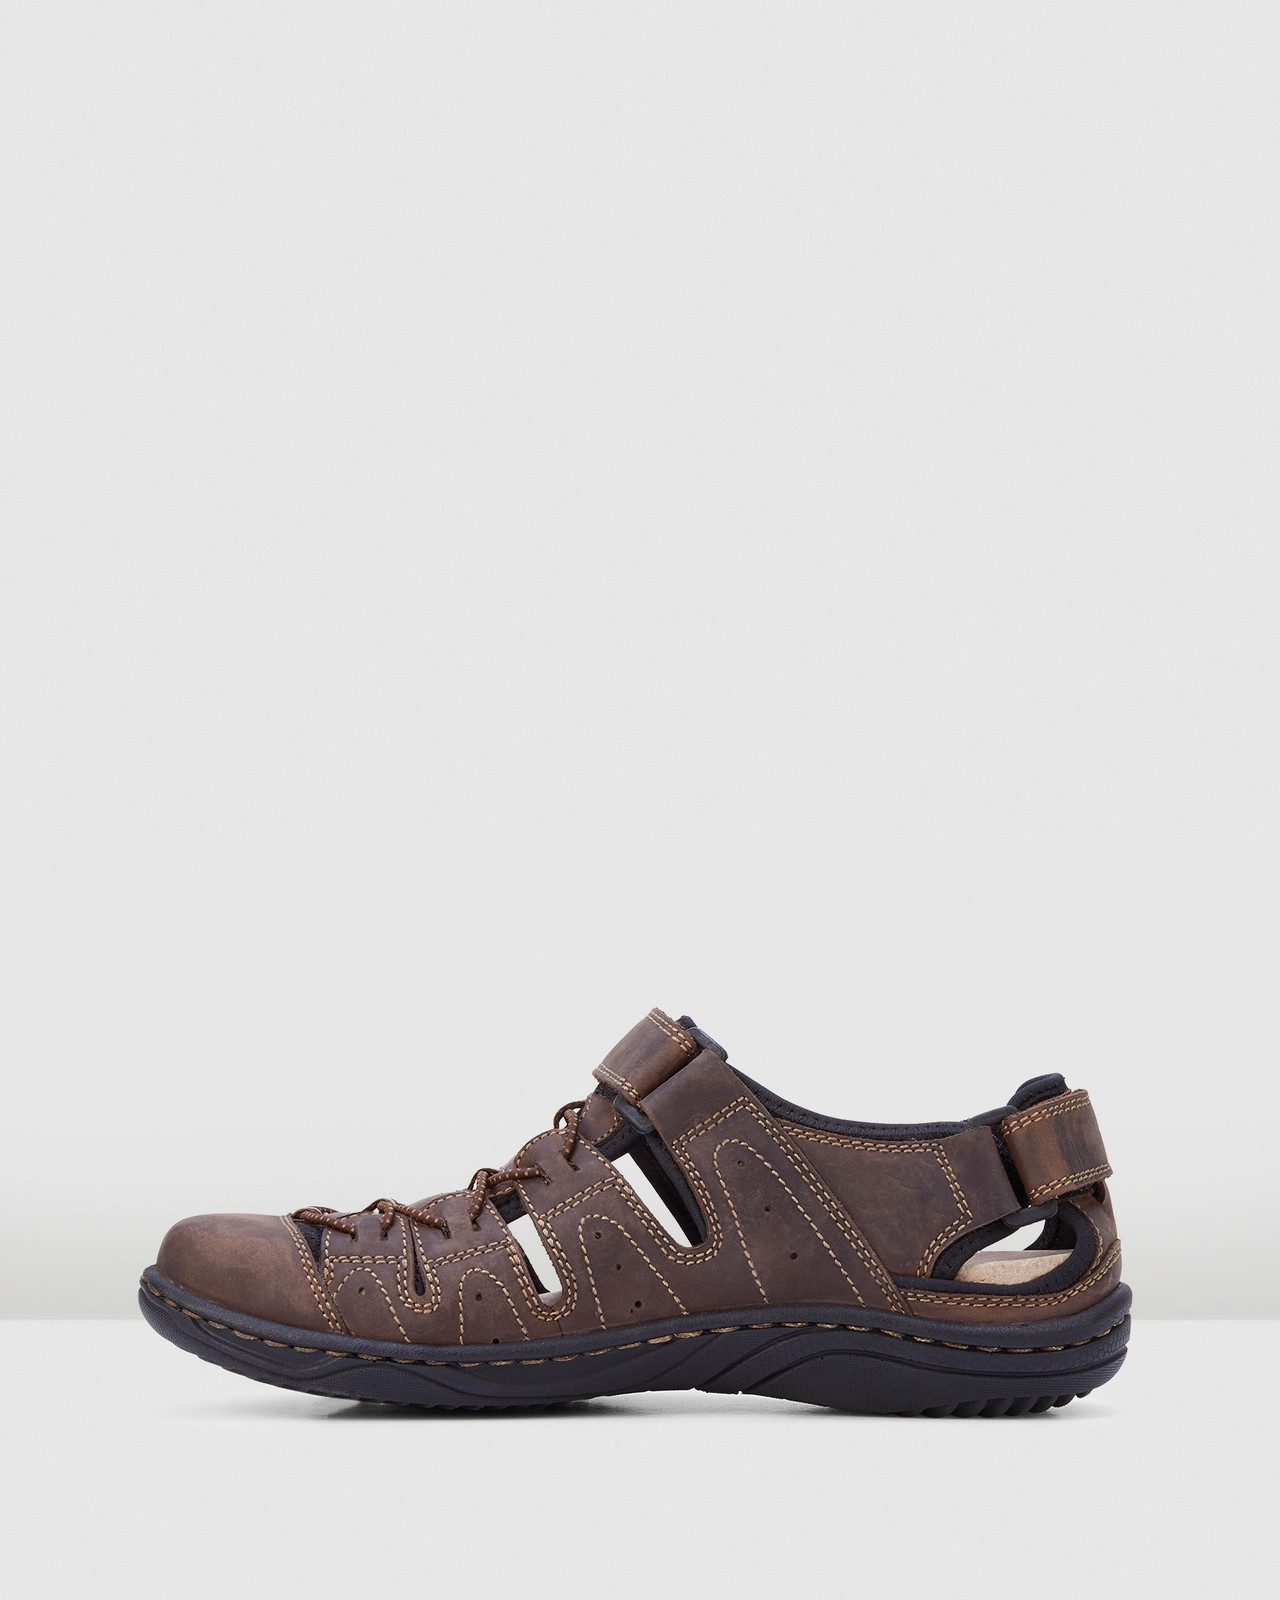 hush puppies anderson sandals